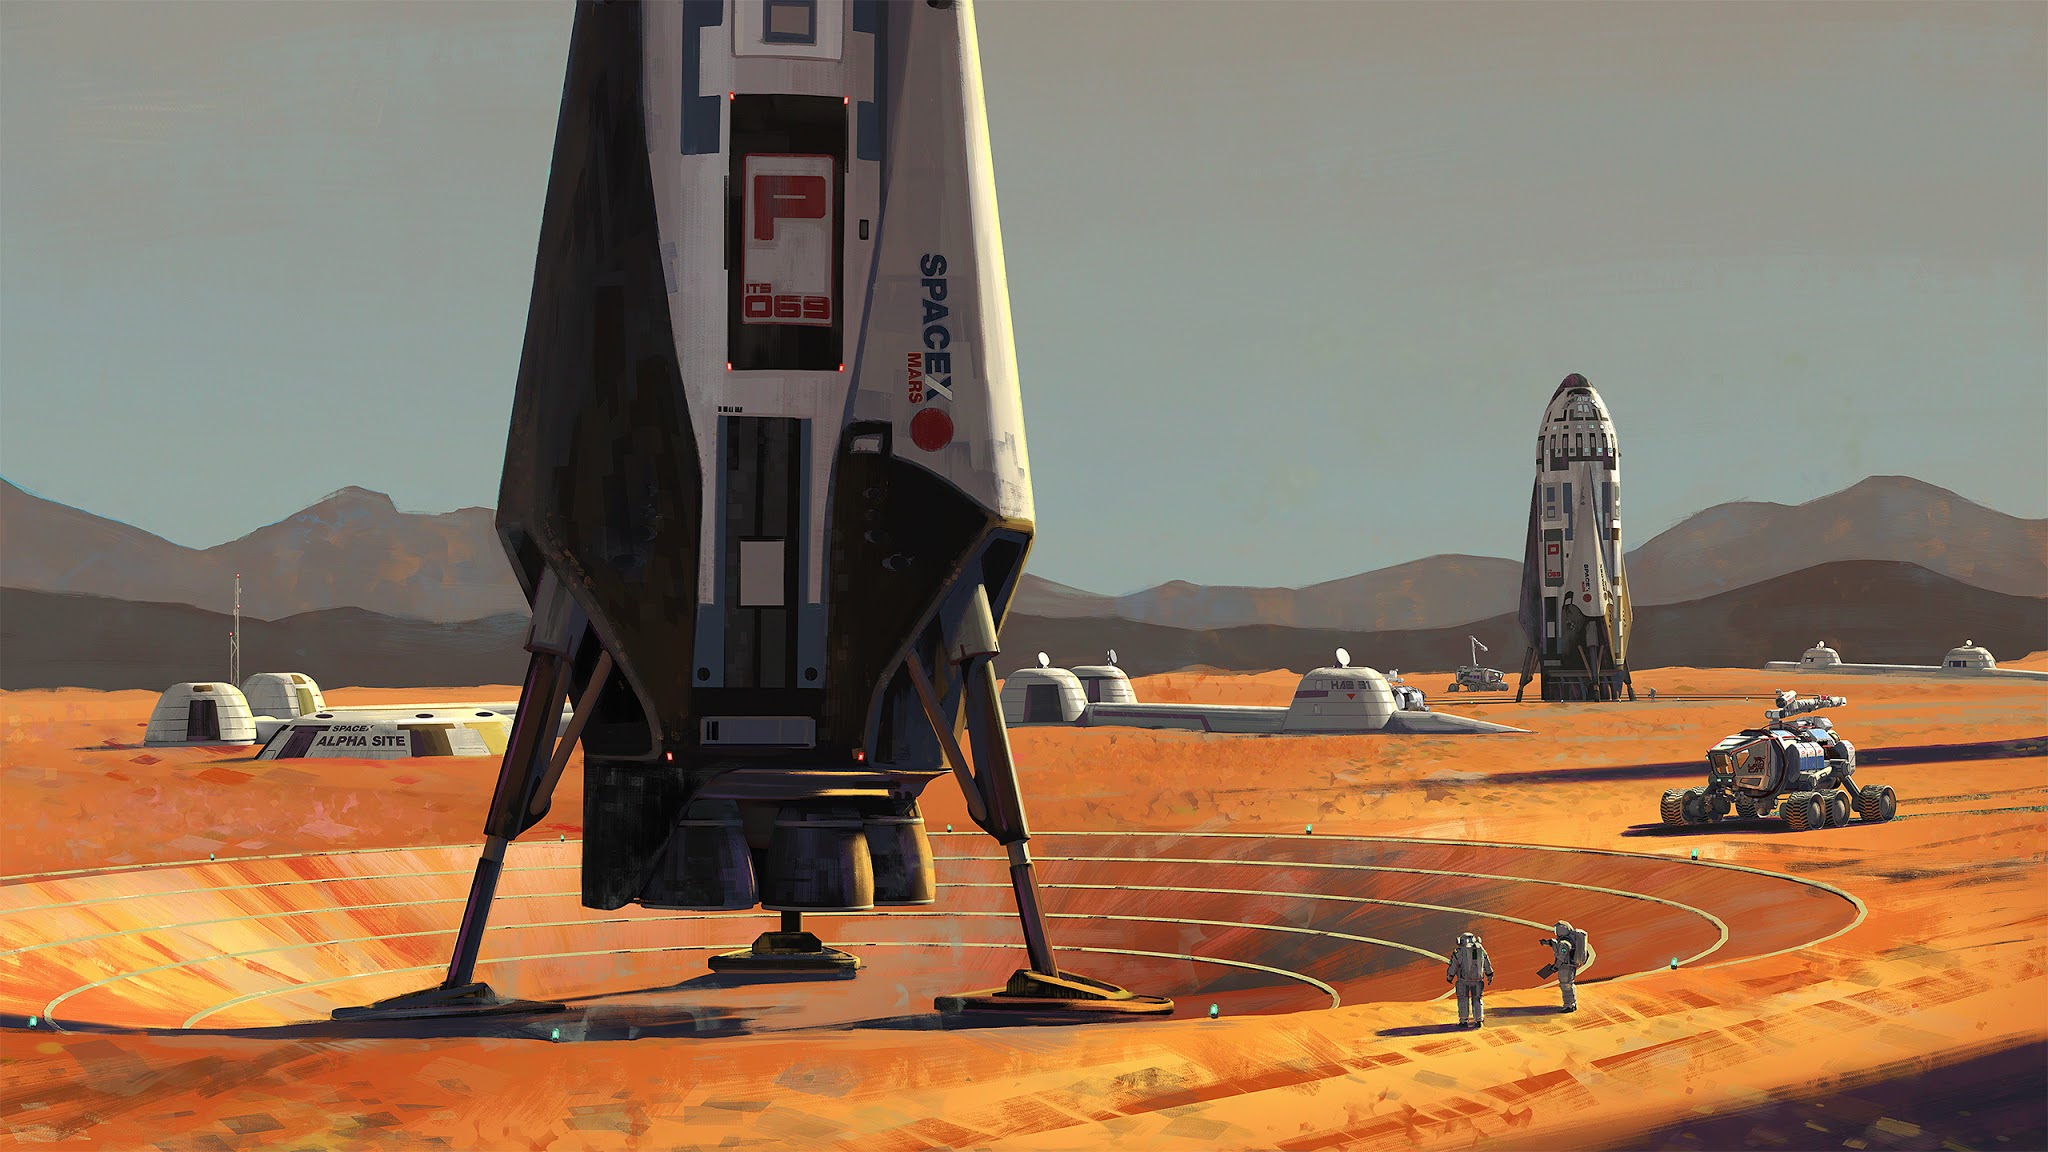 human Mars: SpaceX ITS spaceships at Mars Base Alpha by